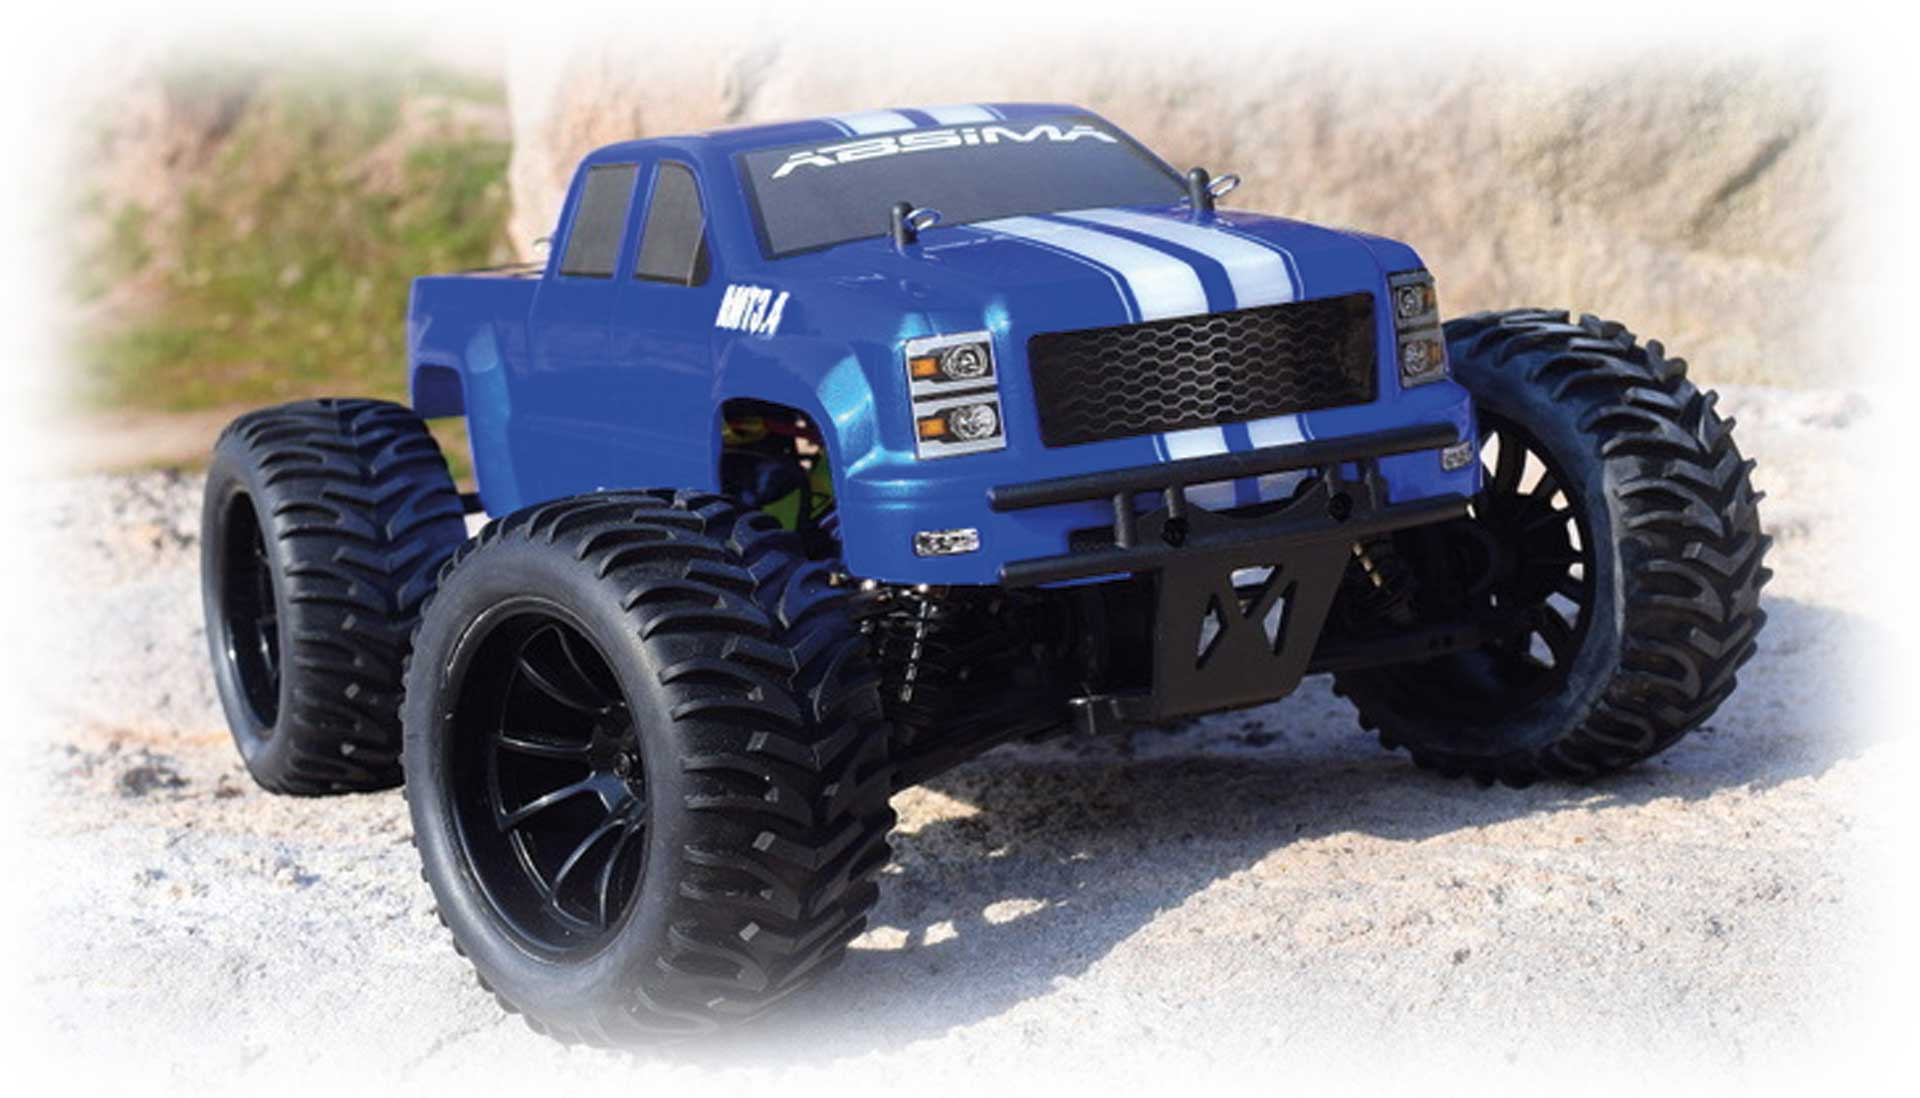 ABSIMA MONSTER TRUCK AMT3.4 4WD BRUSHLESS RTR 1/10